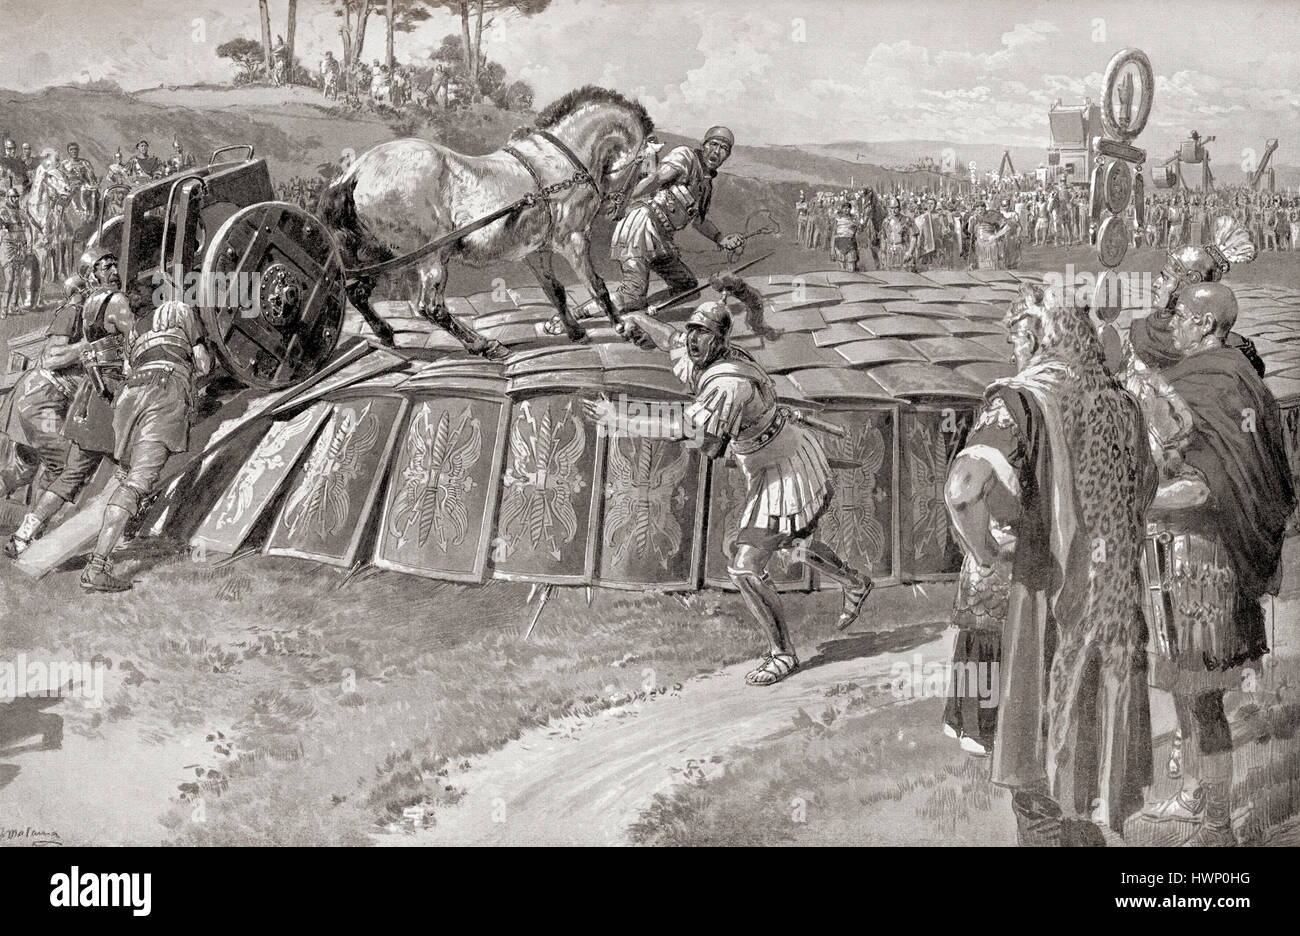 A Roman military exercise in the days of Julius Caesar, testing the Testudo - a military chariot being driven onto - Stock Image